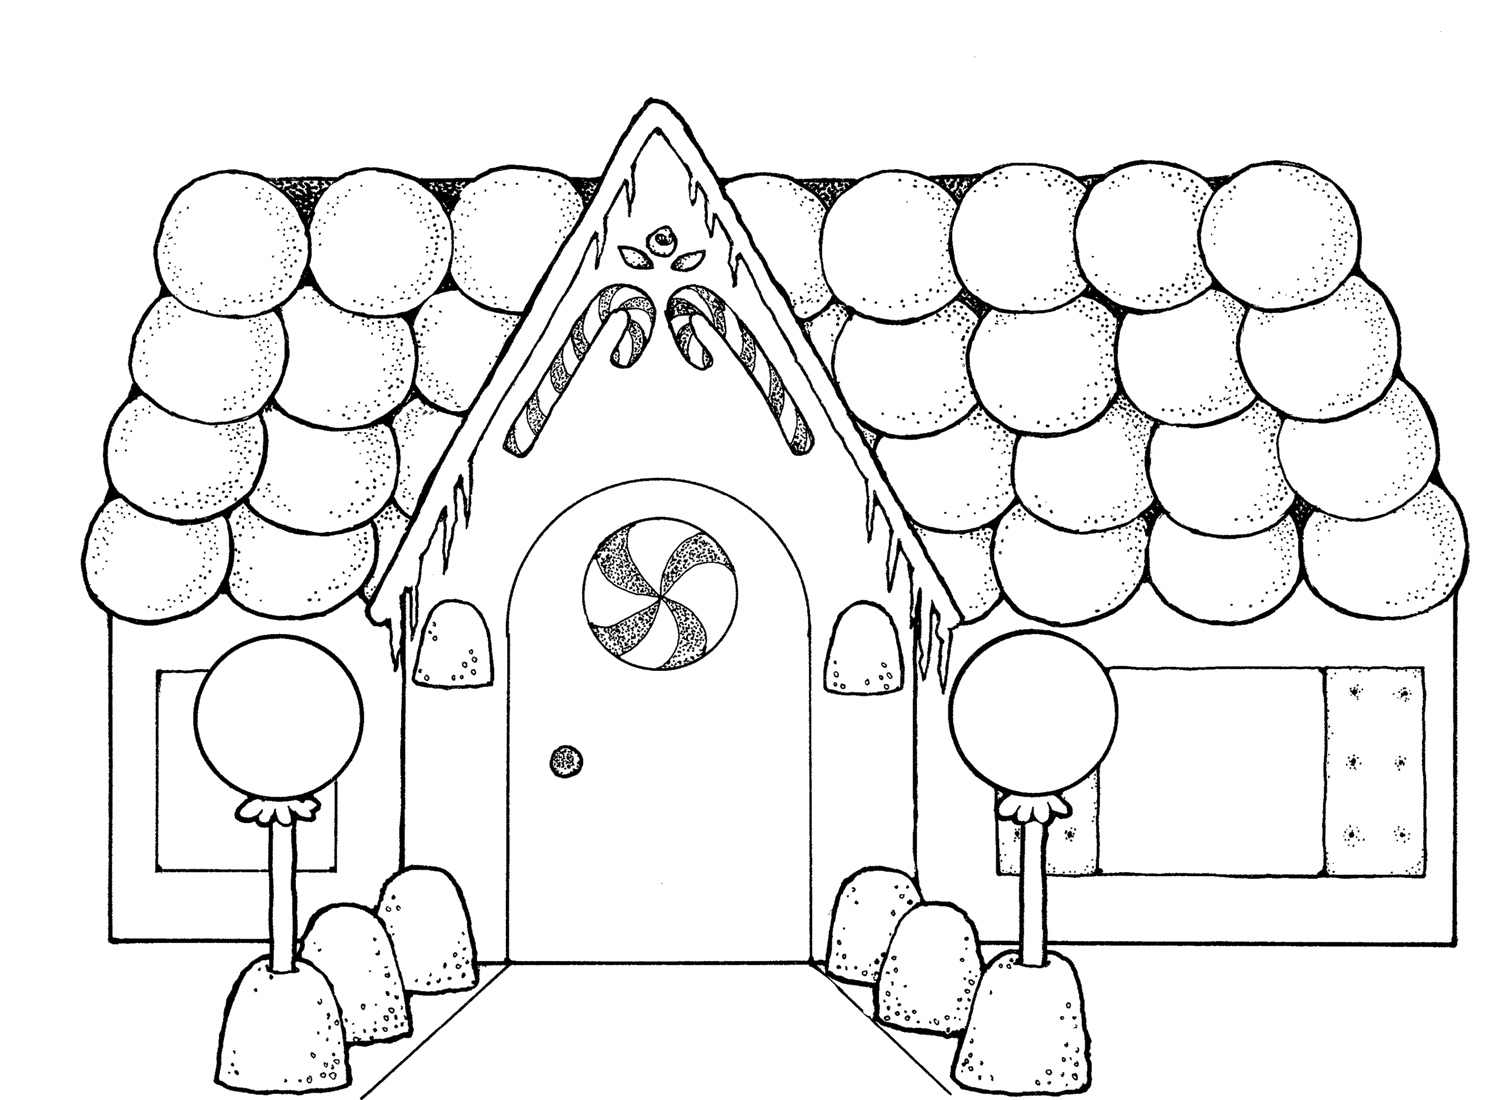 1500x1100 Gingerbread House Coloring Pages To Download And Print For Free